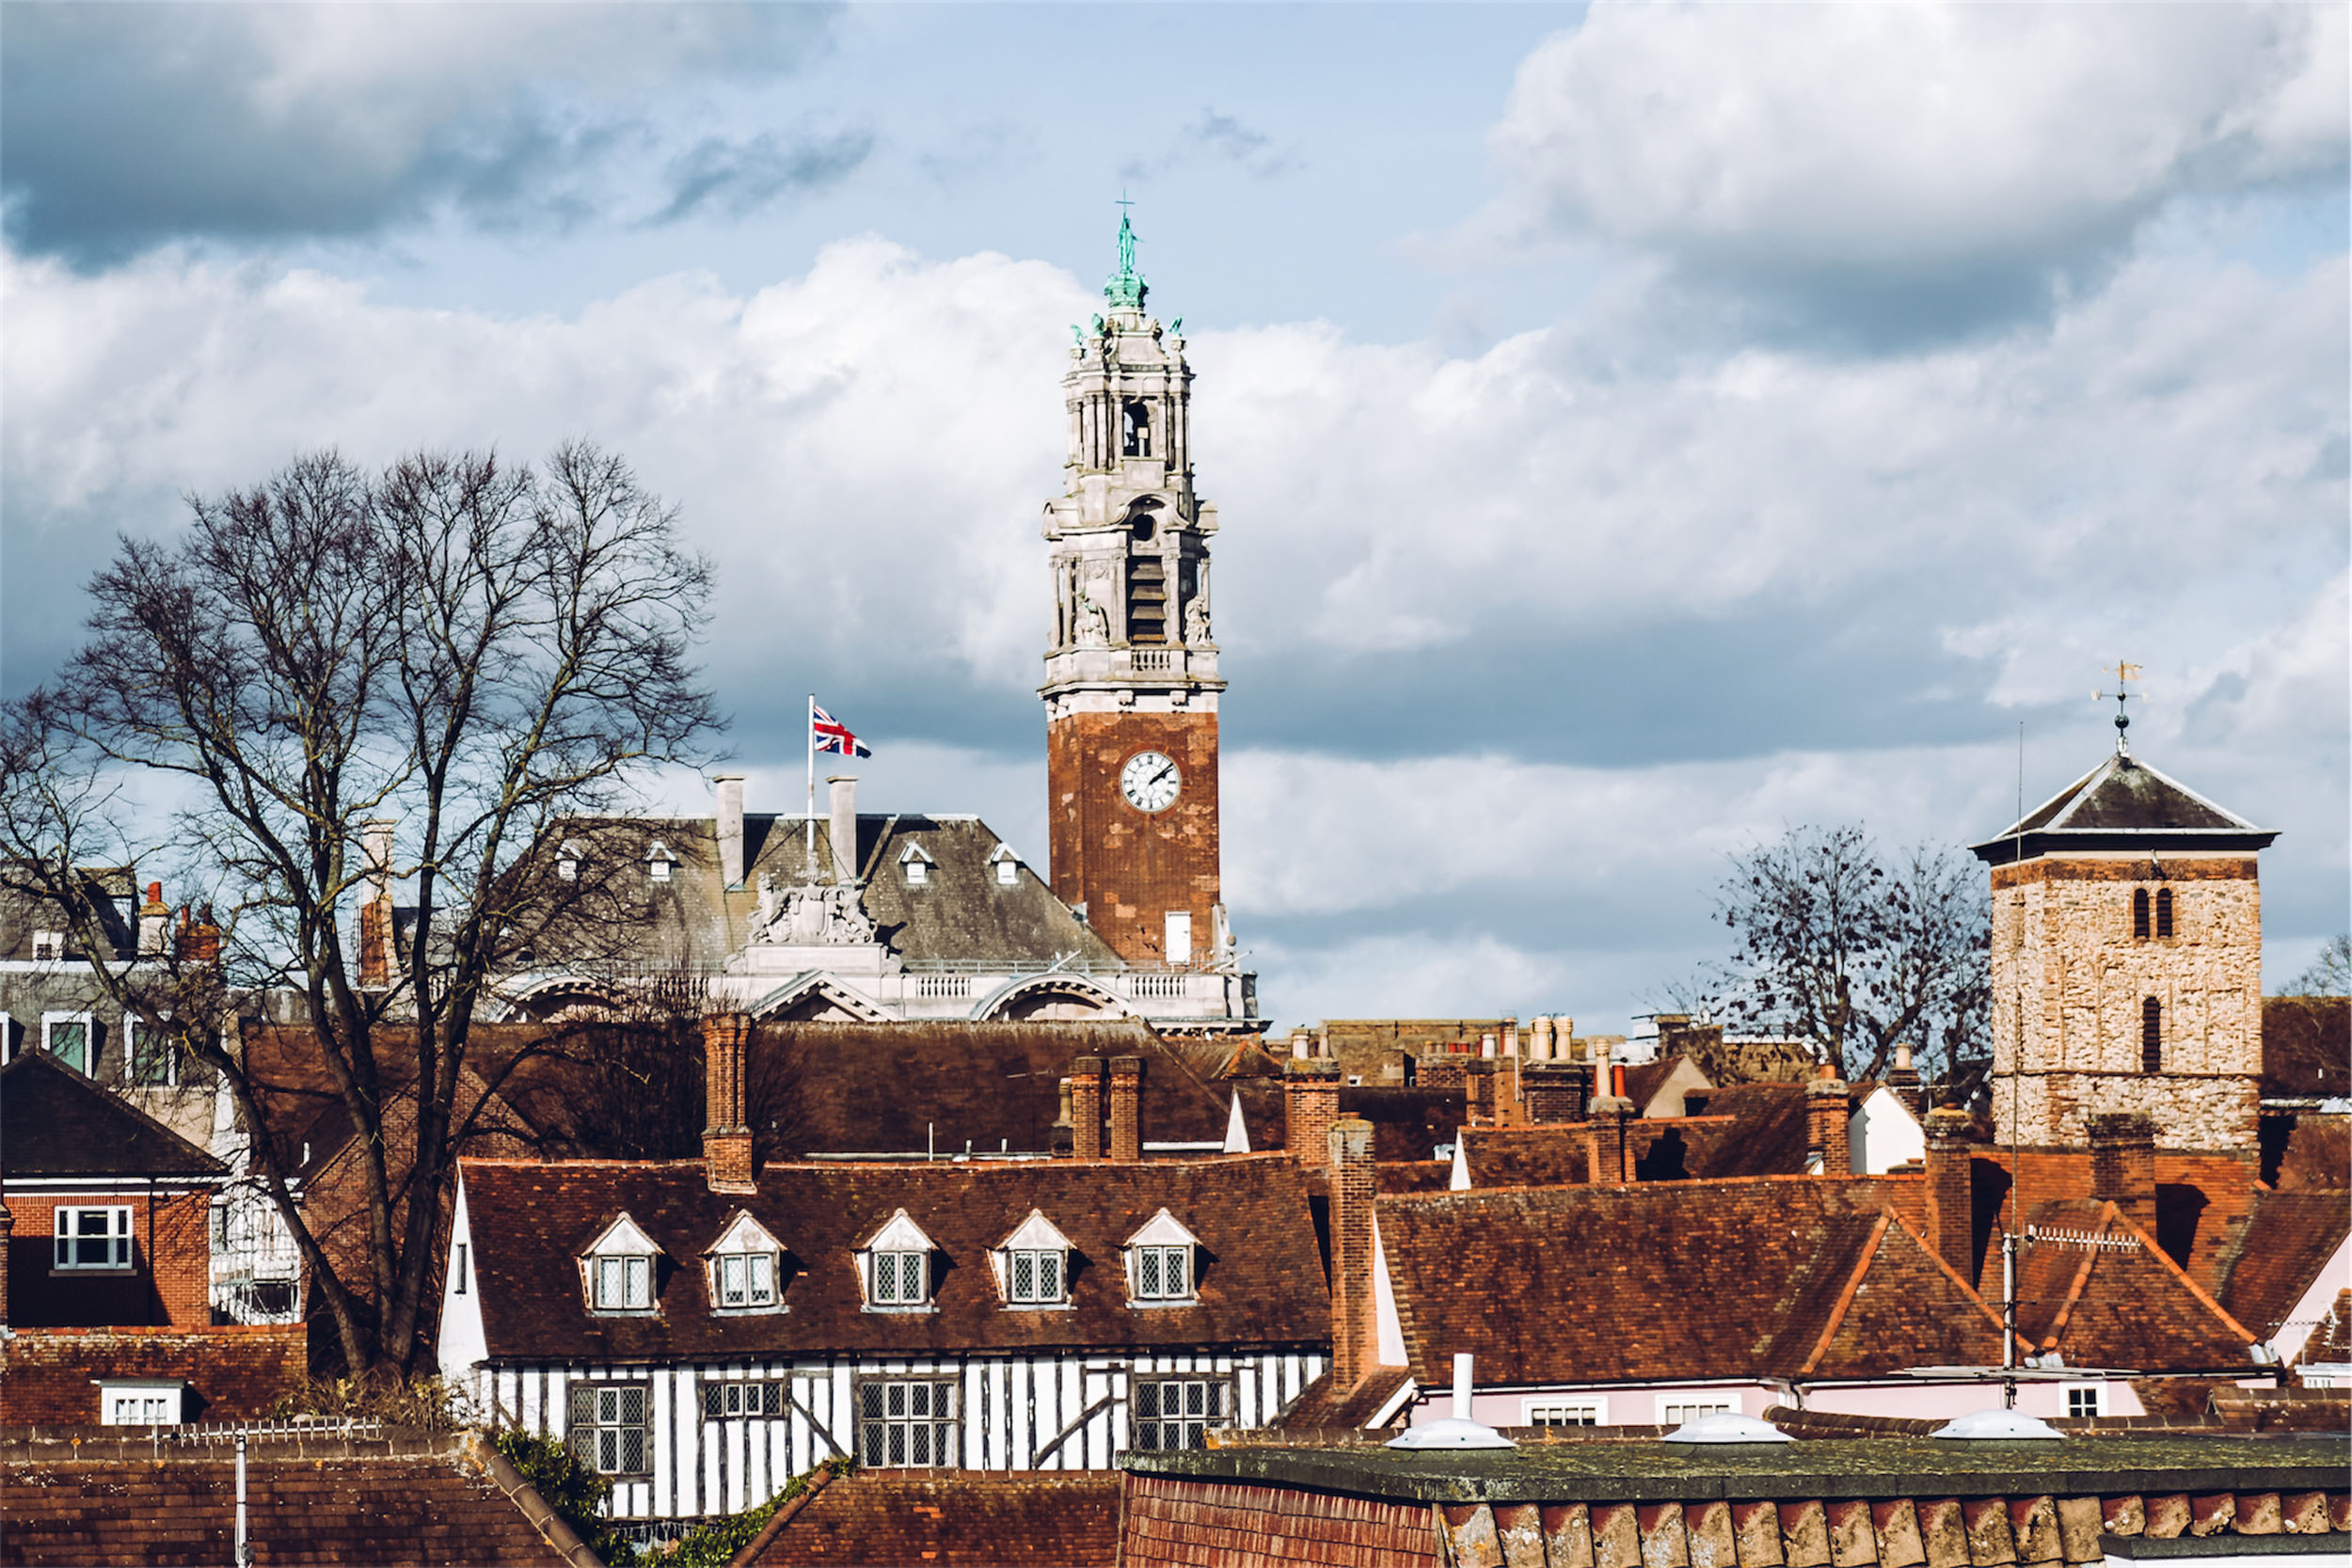 COLCHESTER STREETS - STORIES ABOUT THE OLDEST RECORDED TOWN IN THE UK!HAPPY READING!